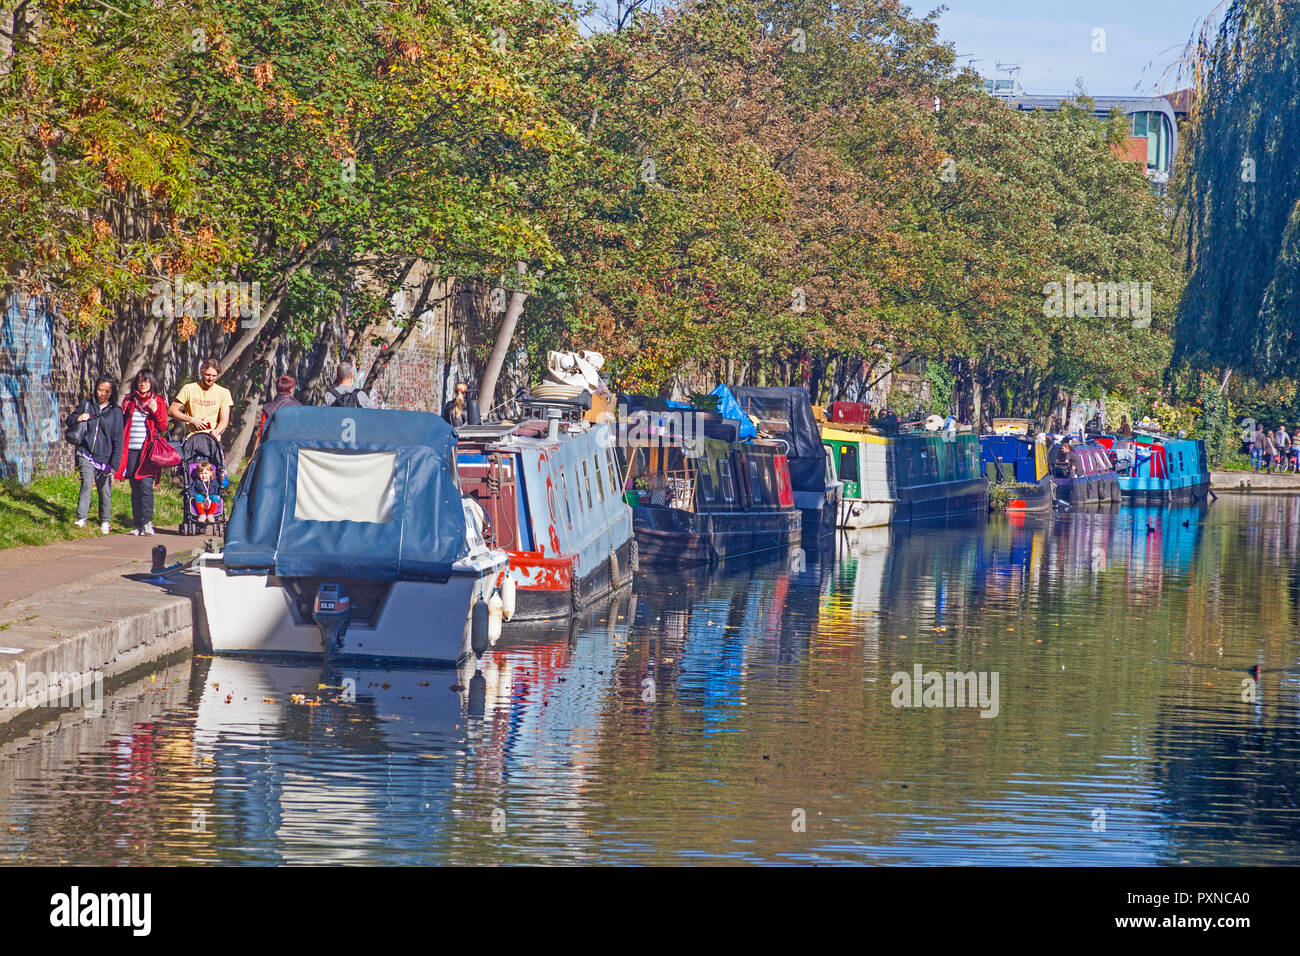 Houseboats on a stretch of Regent's Canal near Camden Lock, with walkers on the towpath. - Stock Image